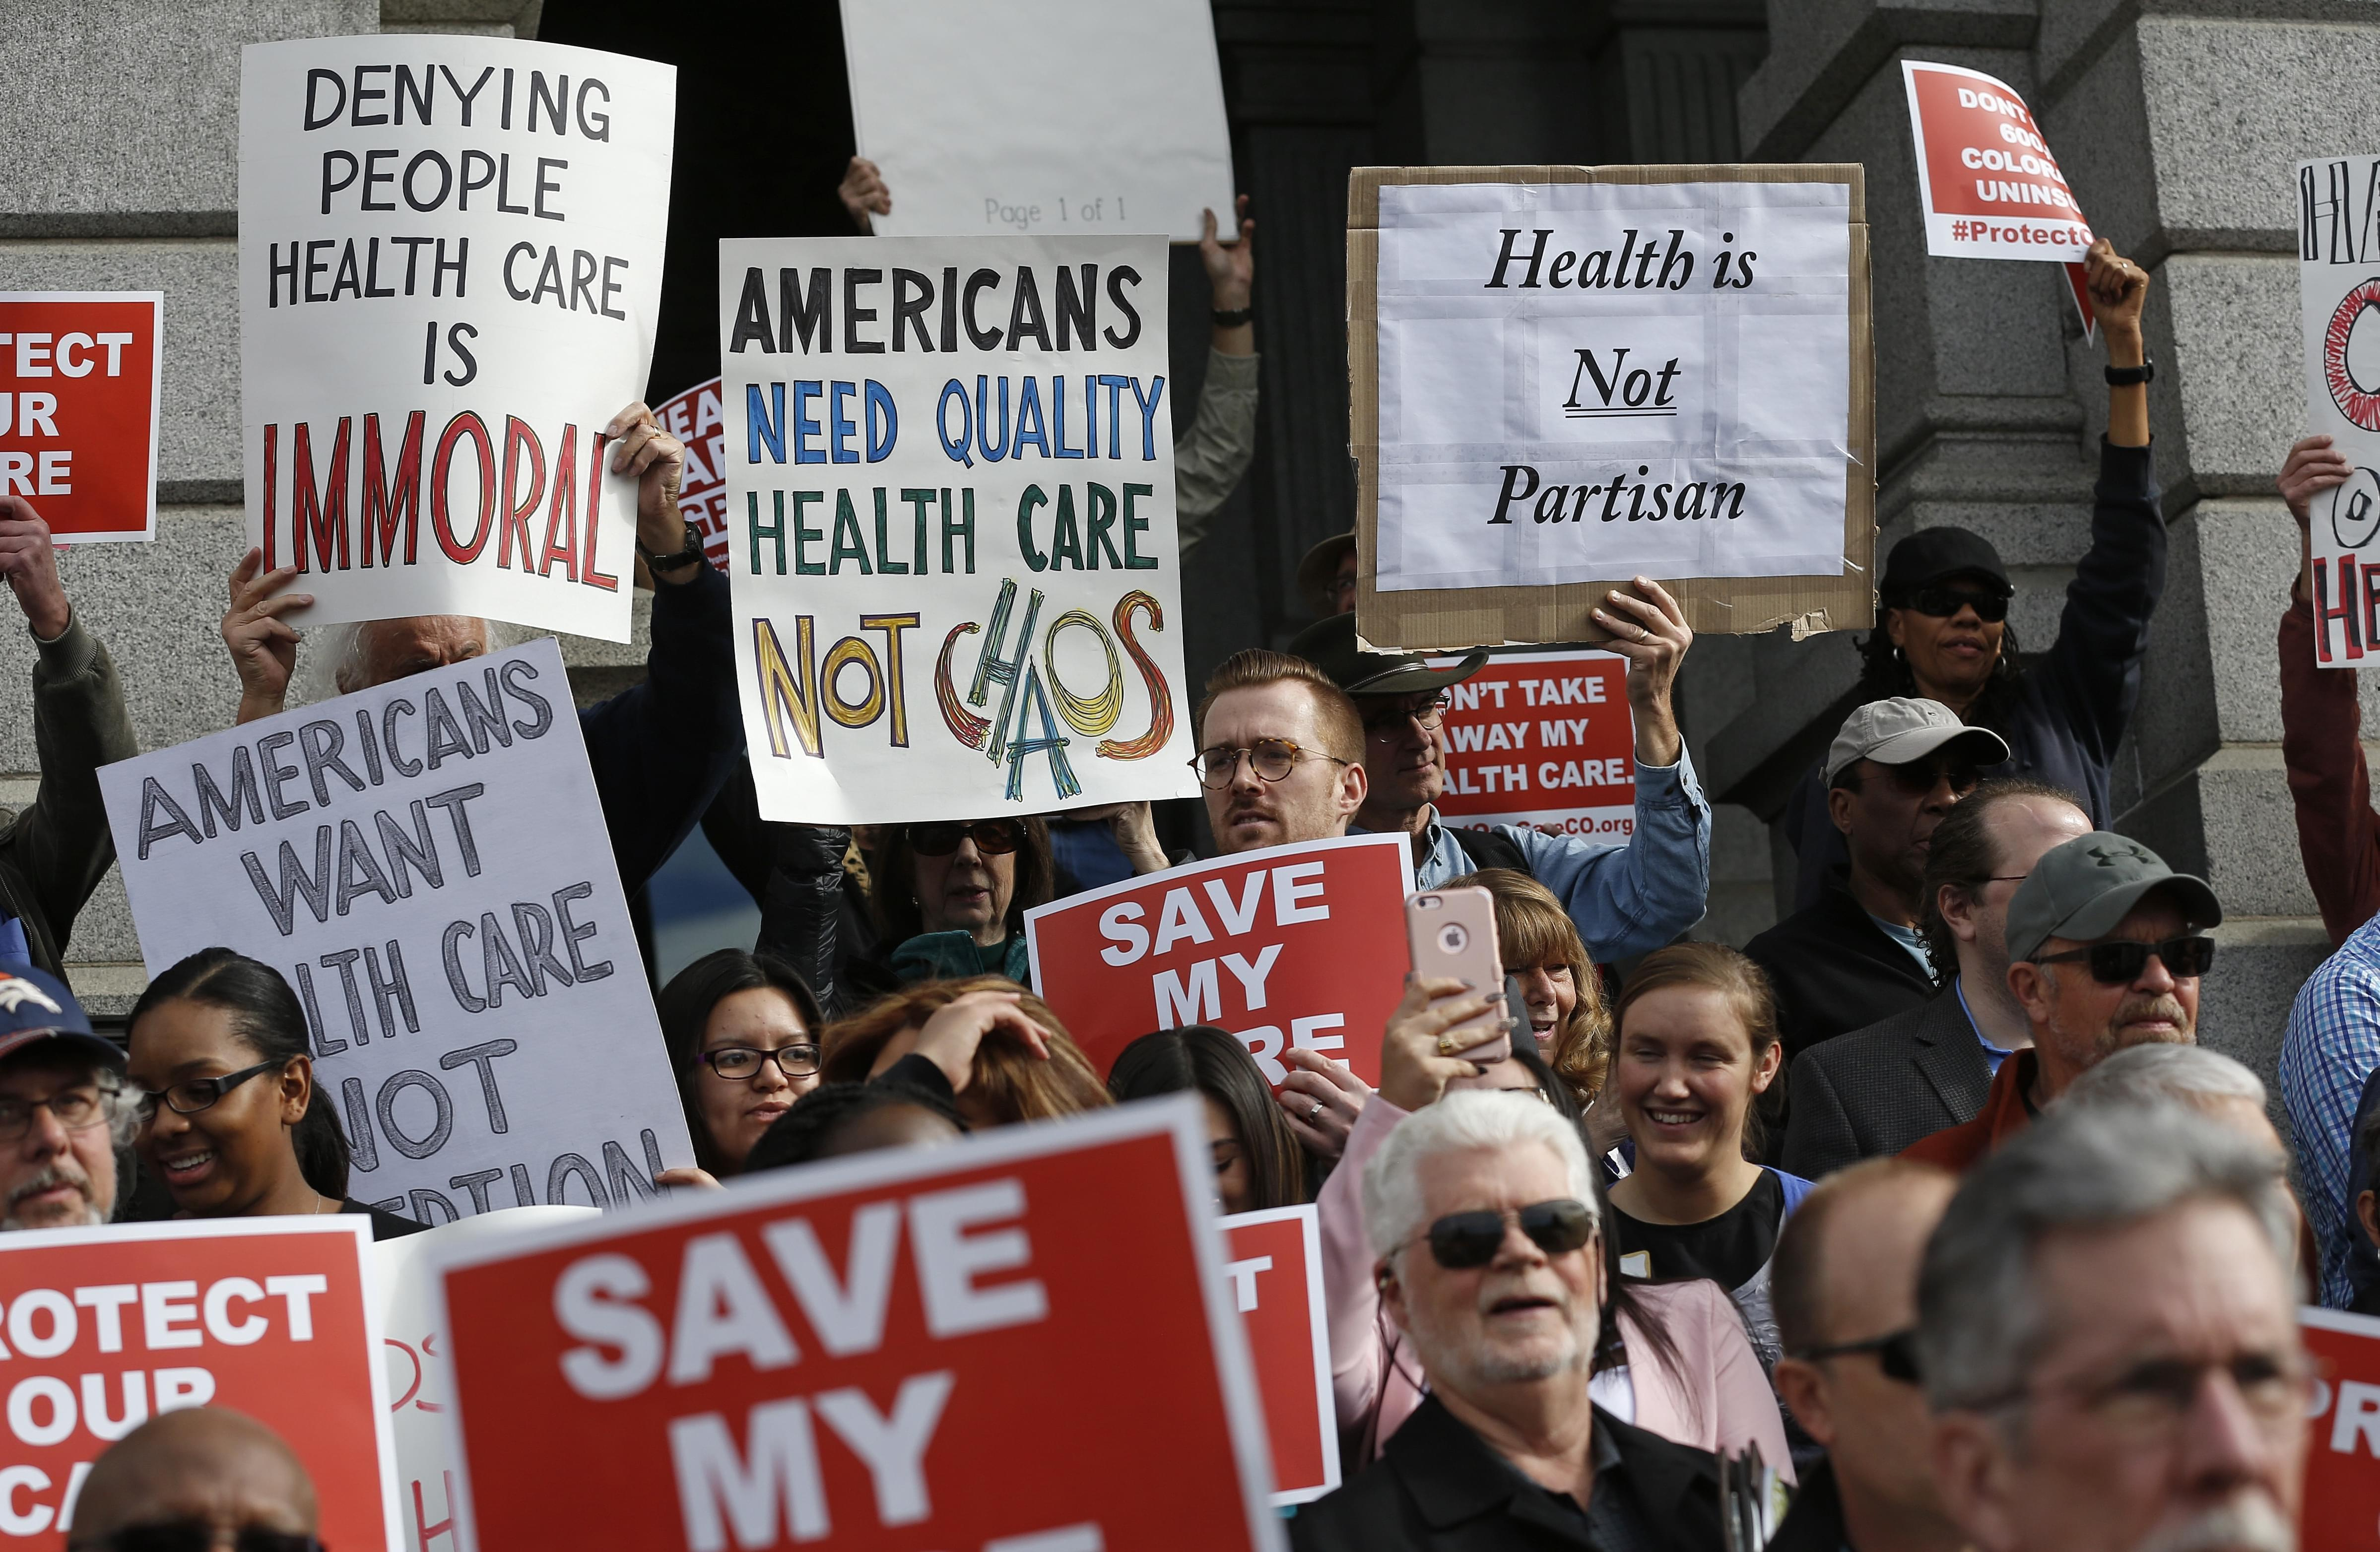 Supporters of the Affordable Care Act, who are also opponents of Colorado's GOP-led plan to undo Colorado's state-run insurance exchange, gather for a rally on the state Capitol steps in Denver, Tuesday, Jan. 31, 2017.